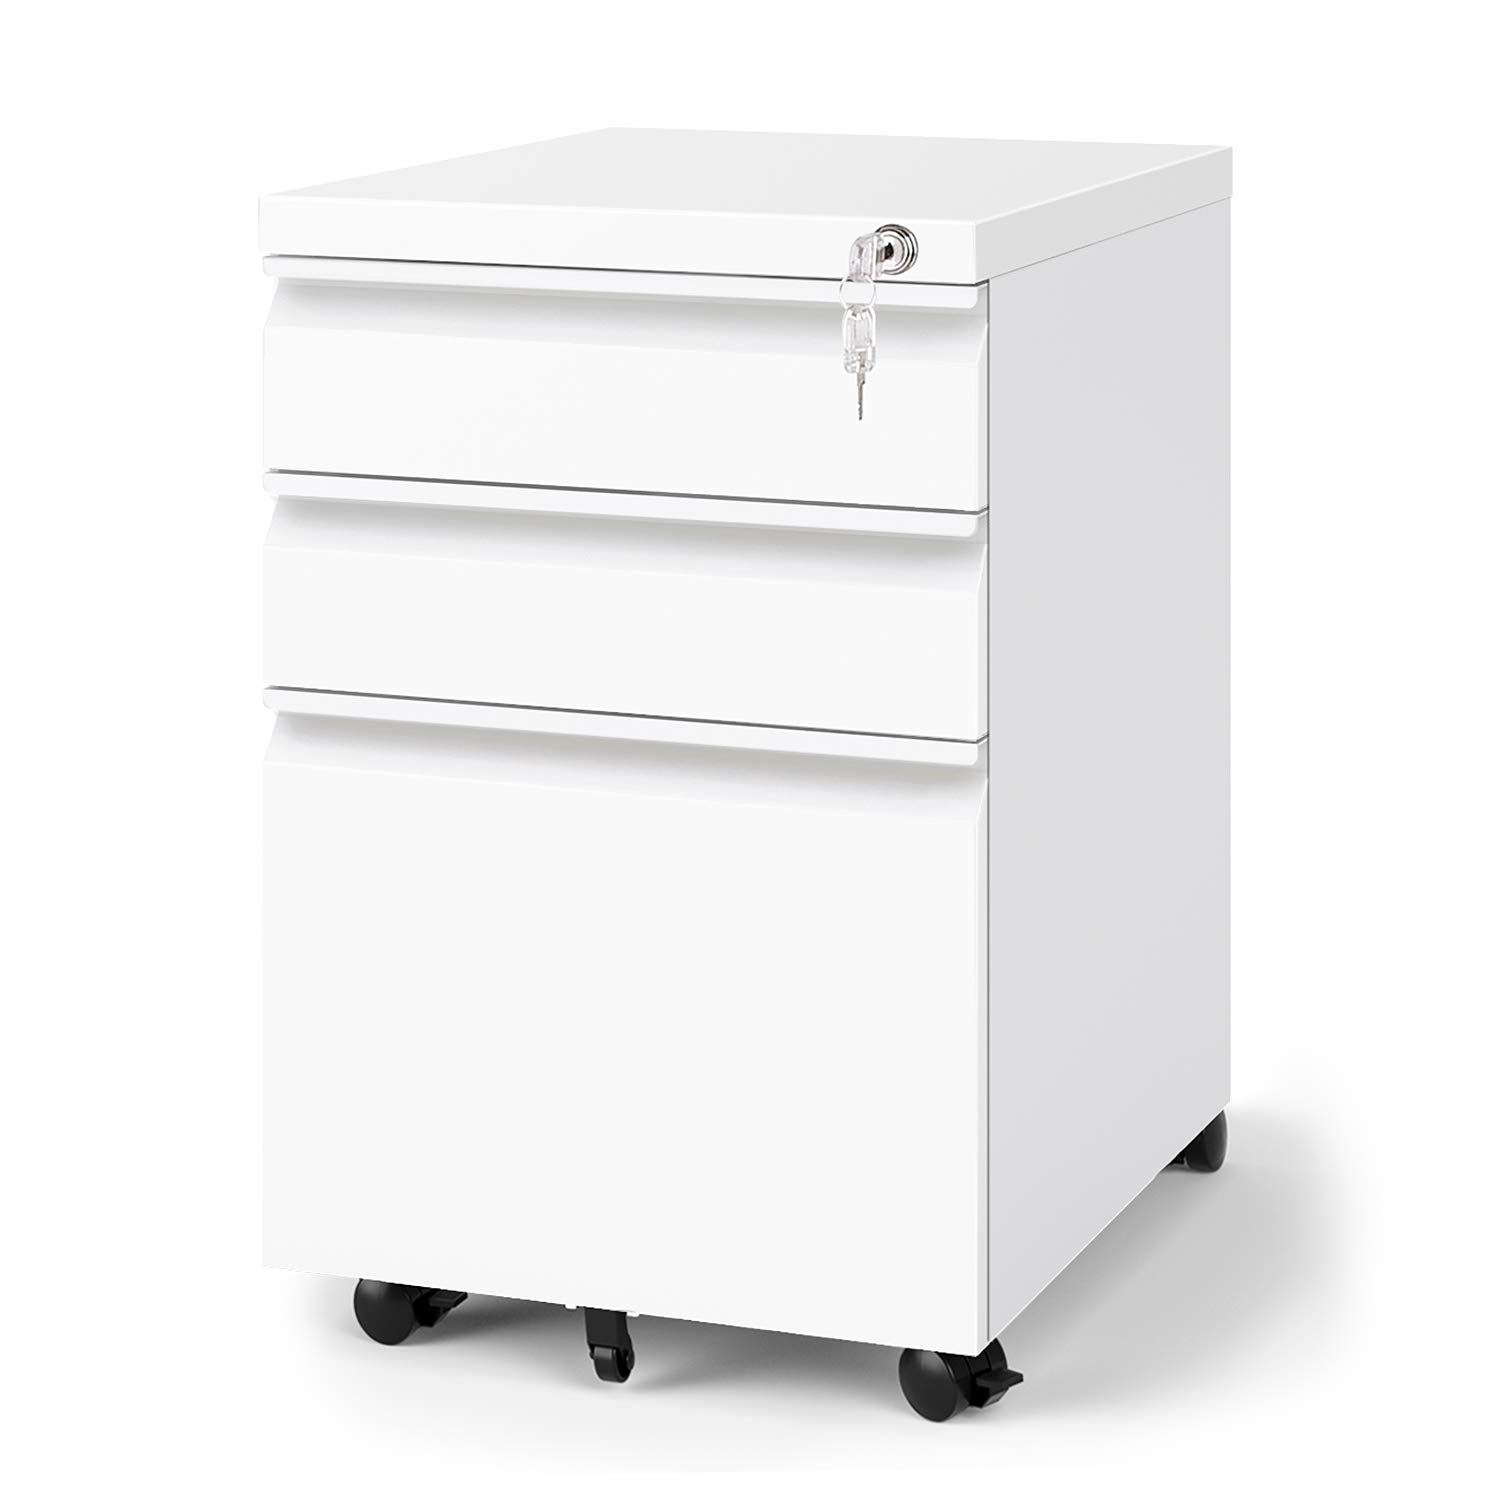 DEVAISE 3-Drawer Mobile File Cabinet with Lock, 19.7'' Depth, Legal/Letter Size, White by DEVAISE